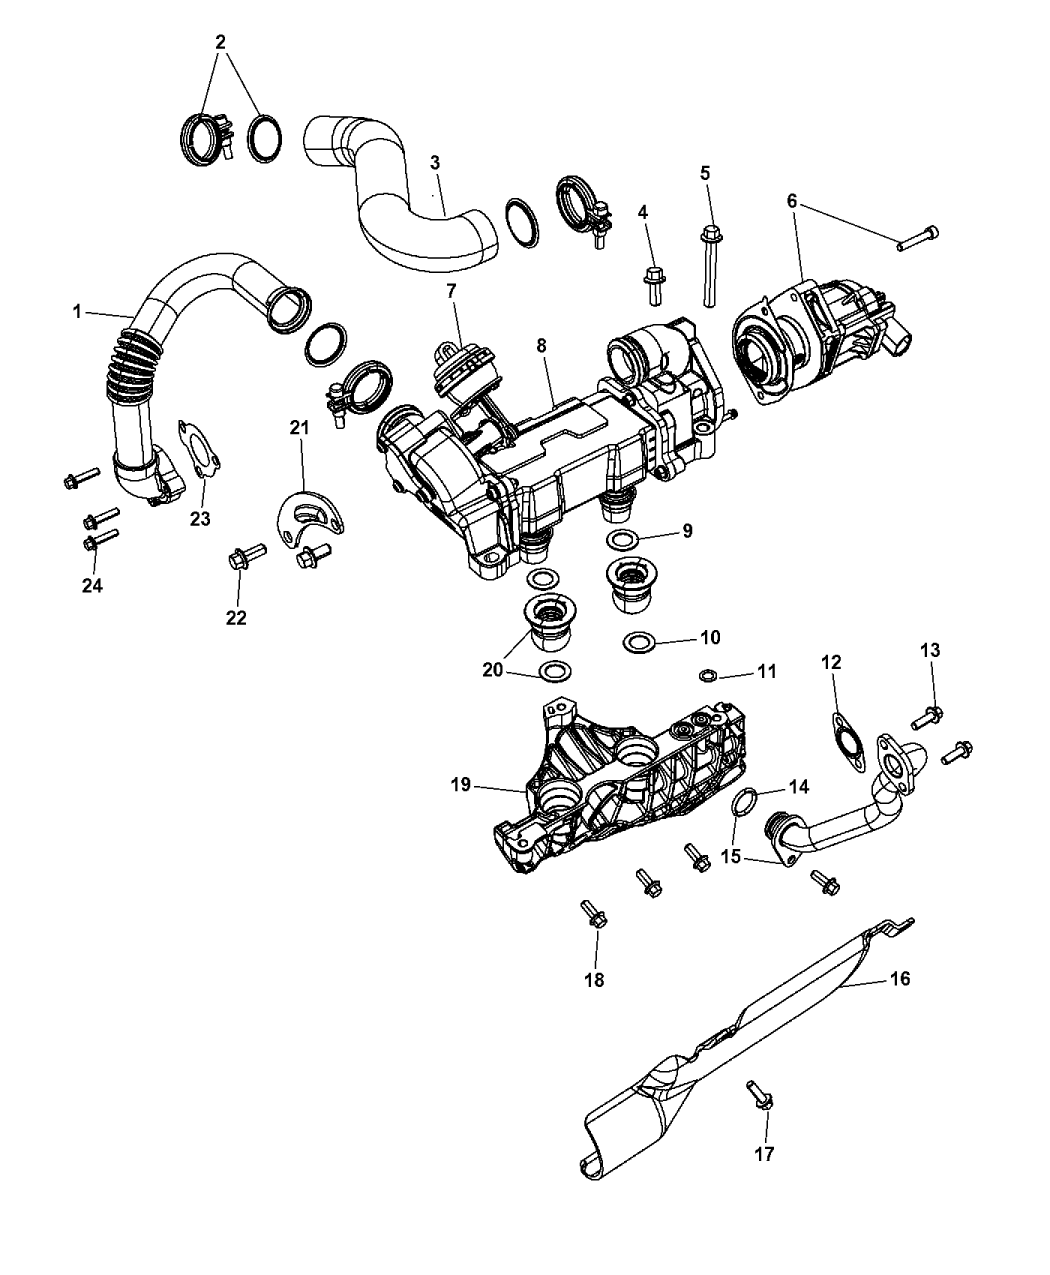 2002 jeep grand cherokee engine diagram 2011 jeep grand cherokee engine diagram #9